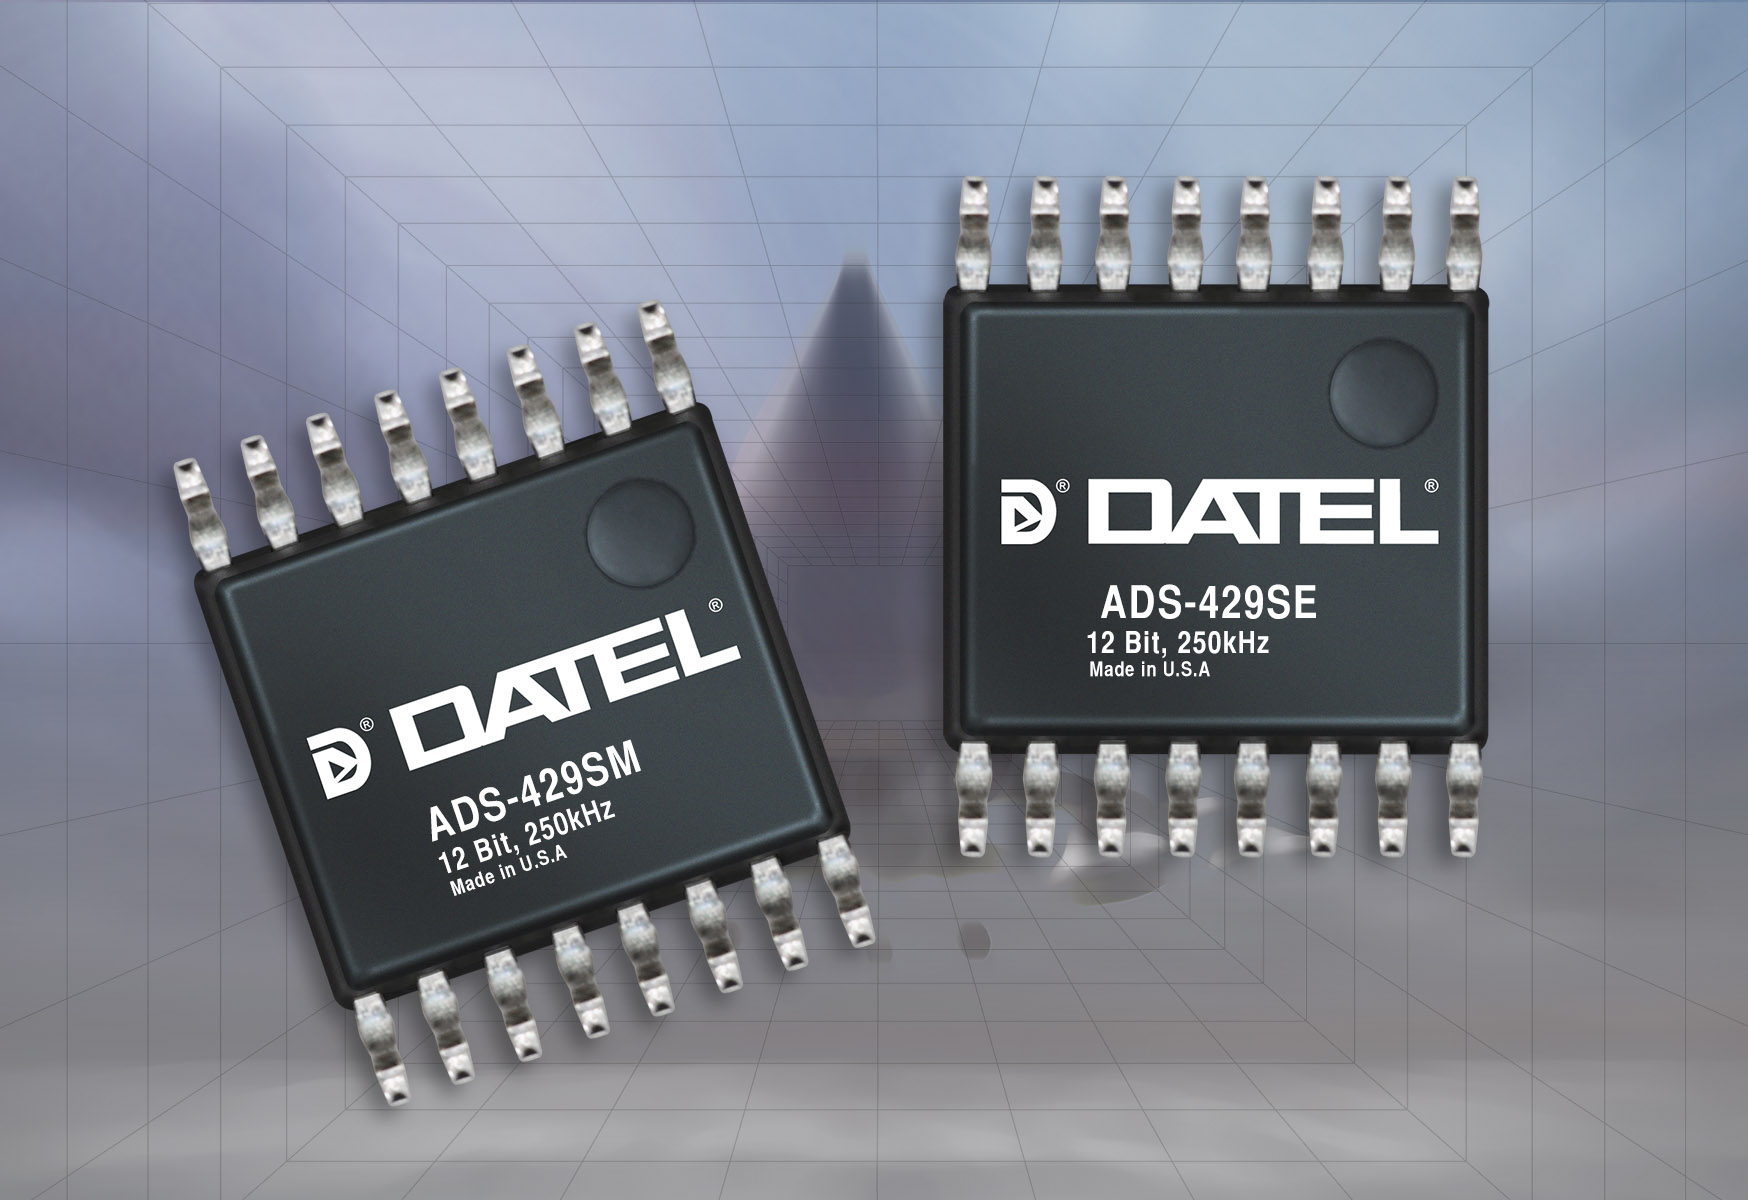 New Products News Datel Data Acquisition Components Dual 10 Bit 500 Msps Dac The Ads 429 Is A 12 250ksps Multi Channel Sar Analog To Digital Converter Housed In 16 Pin Plastic Tssop Package It Best Choice For All